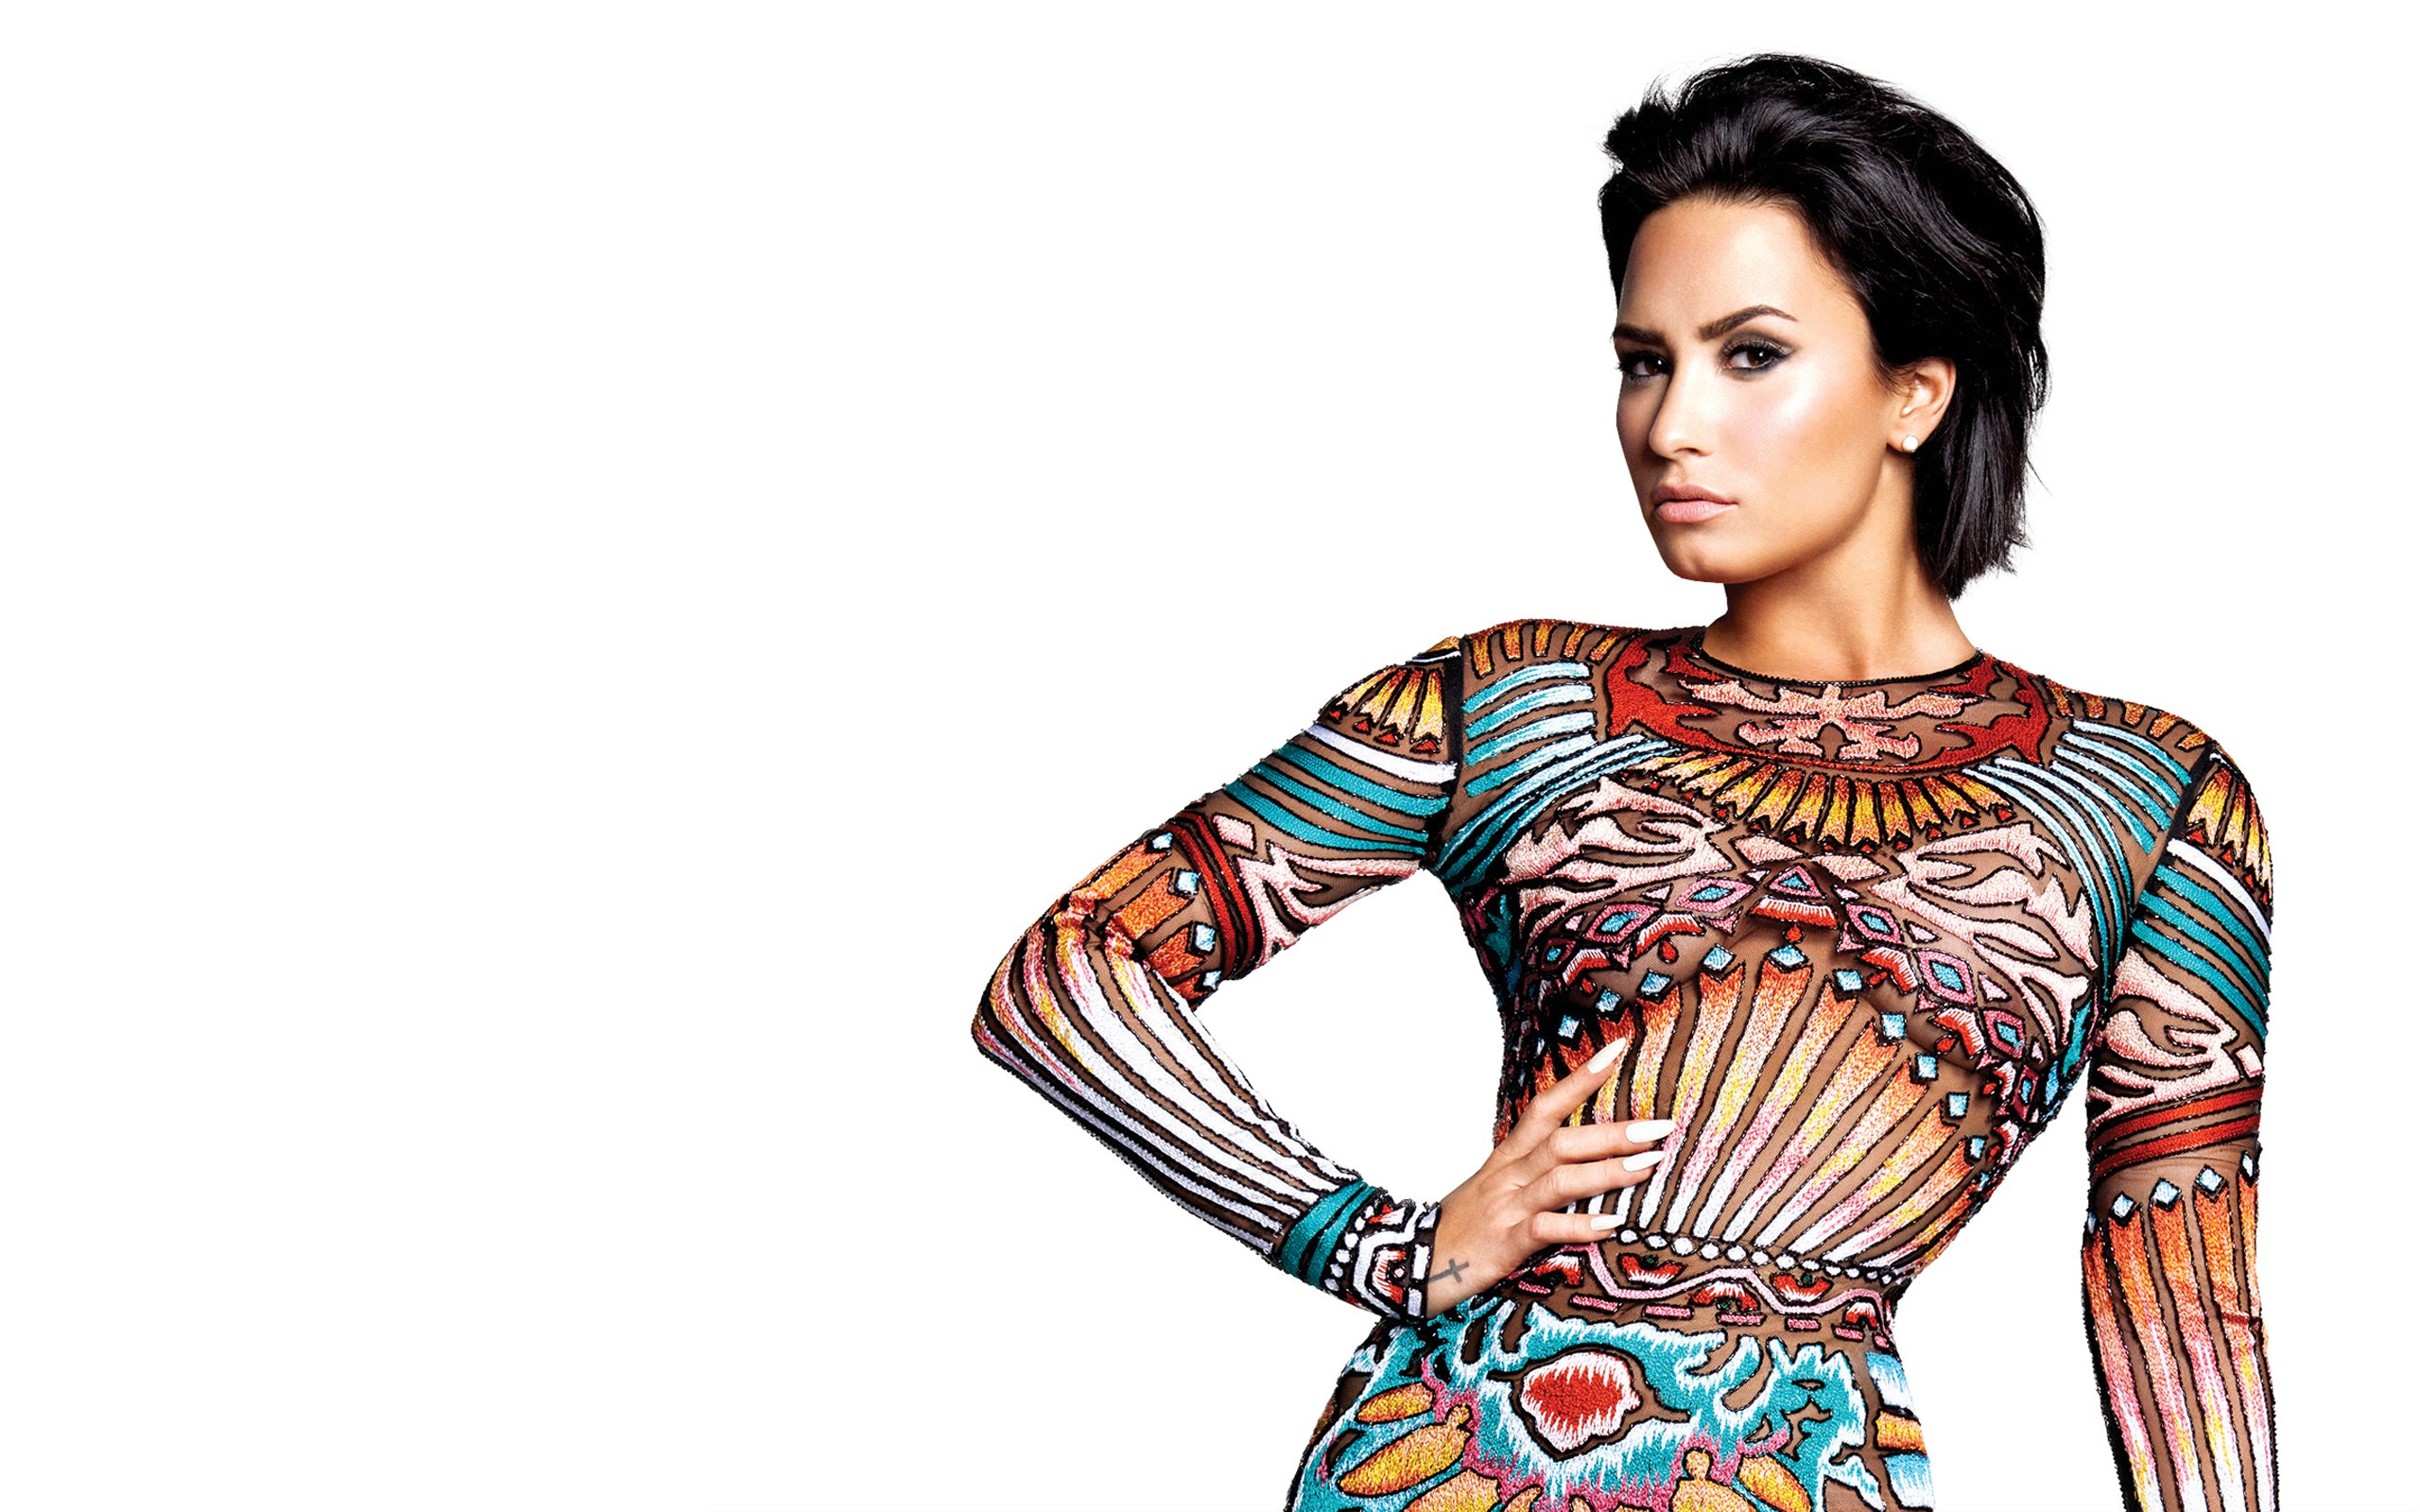 Demi Lovato 2016 Desktop Wallpaper   New HD Wallpapers 2560x1600